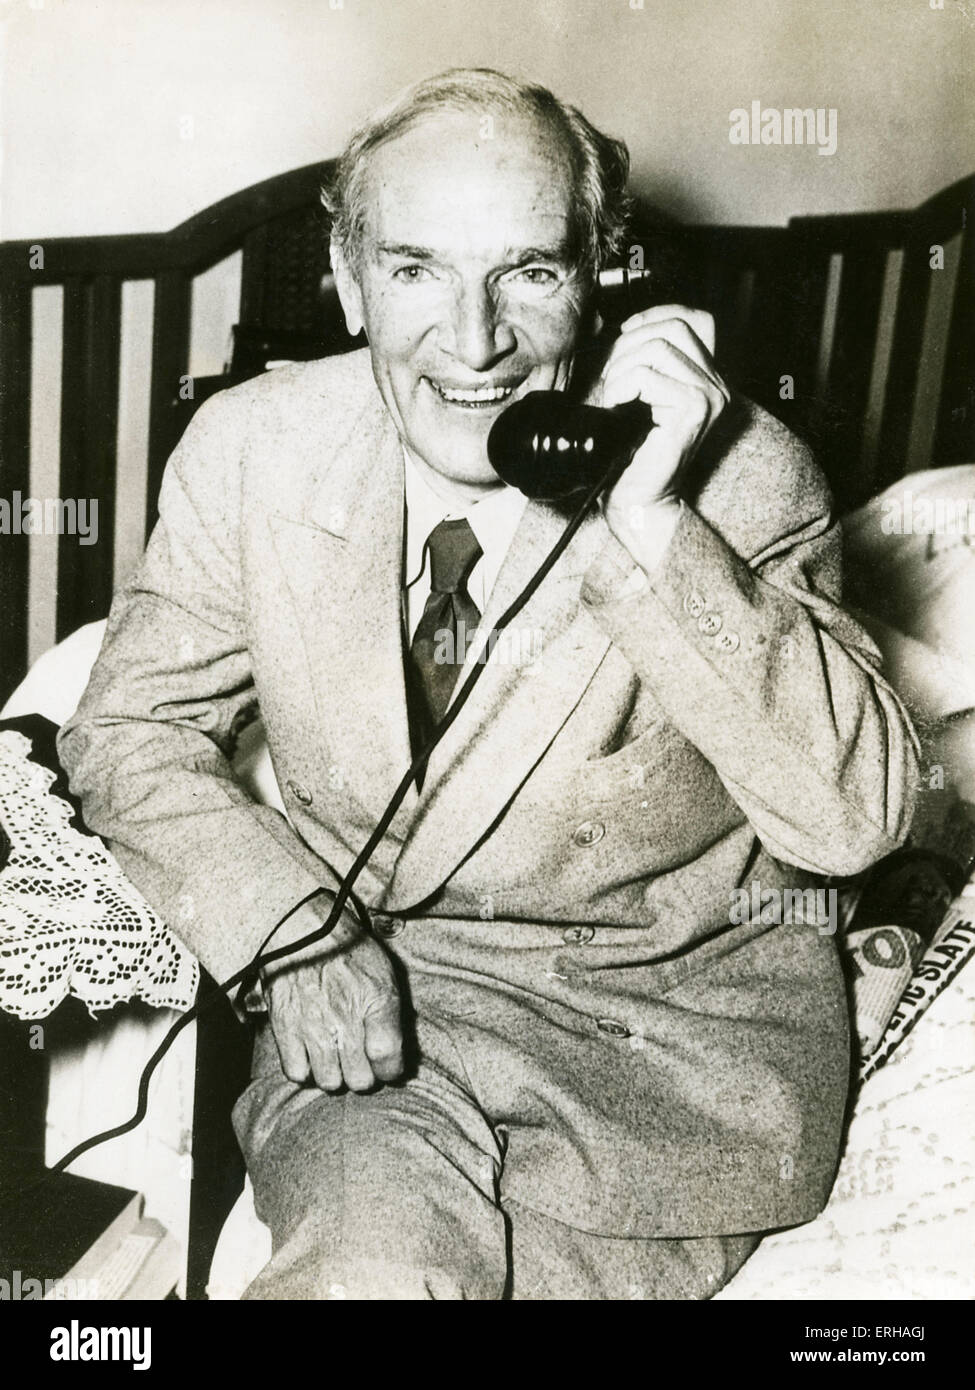 Upton Sinclair (1878-1968), novelist and politician, telephoning during his electon campaign, taken November 6th - Stock Image